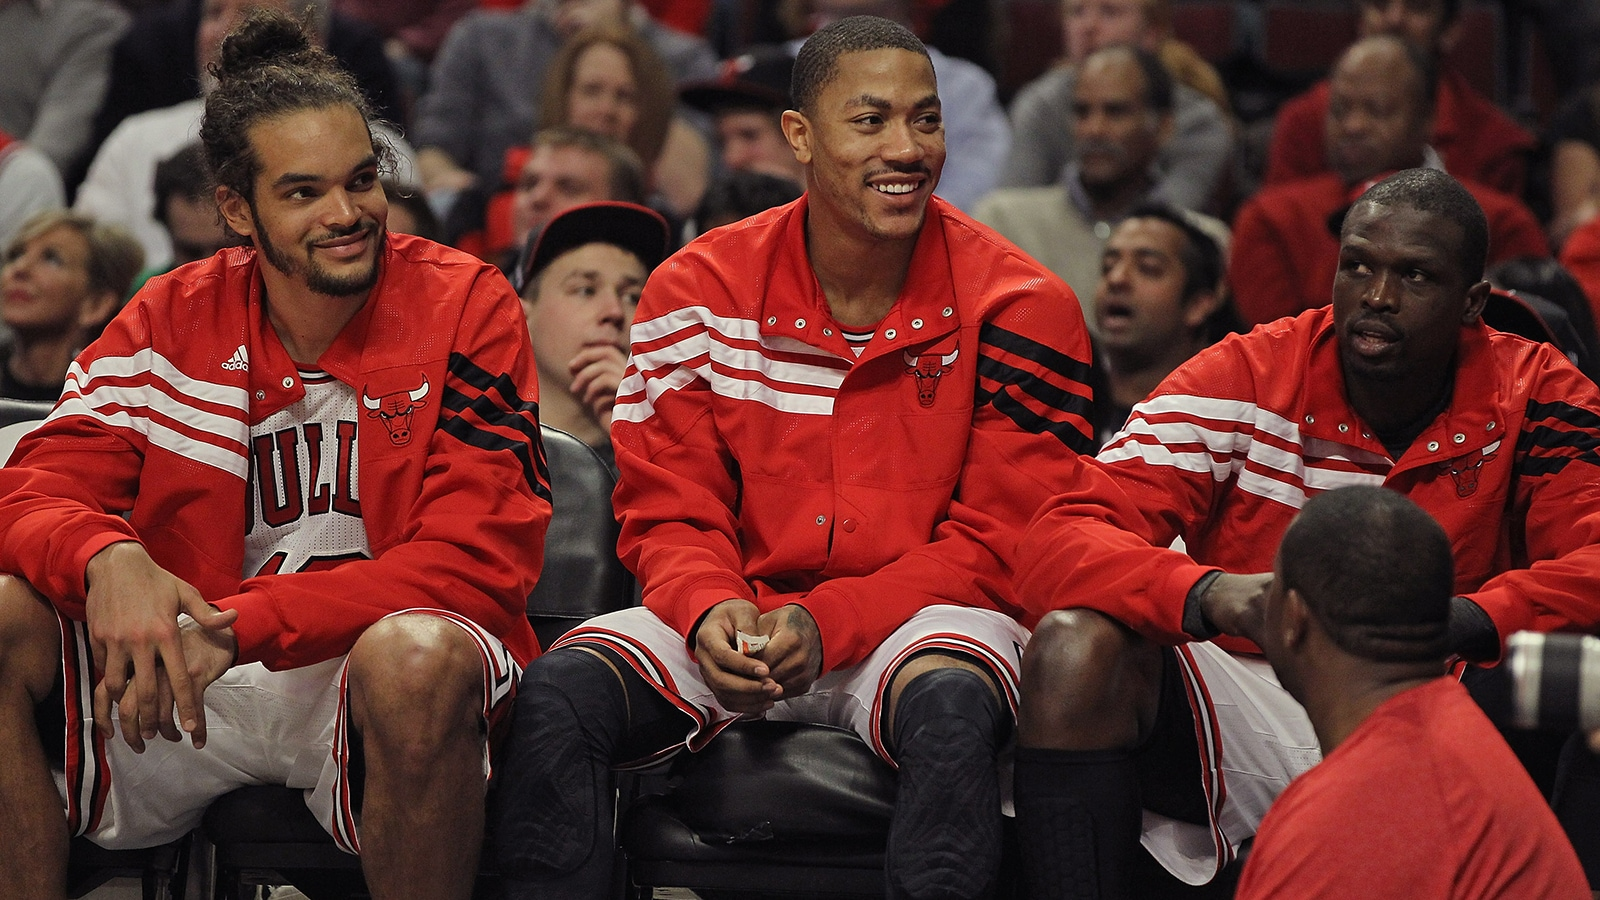 Derrick Rose, Joakim Noah, and Luol Deng